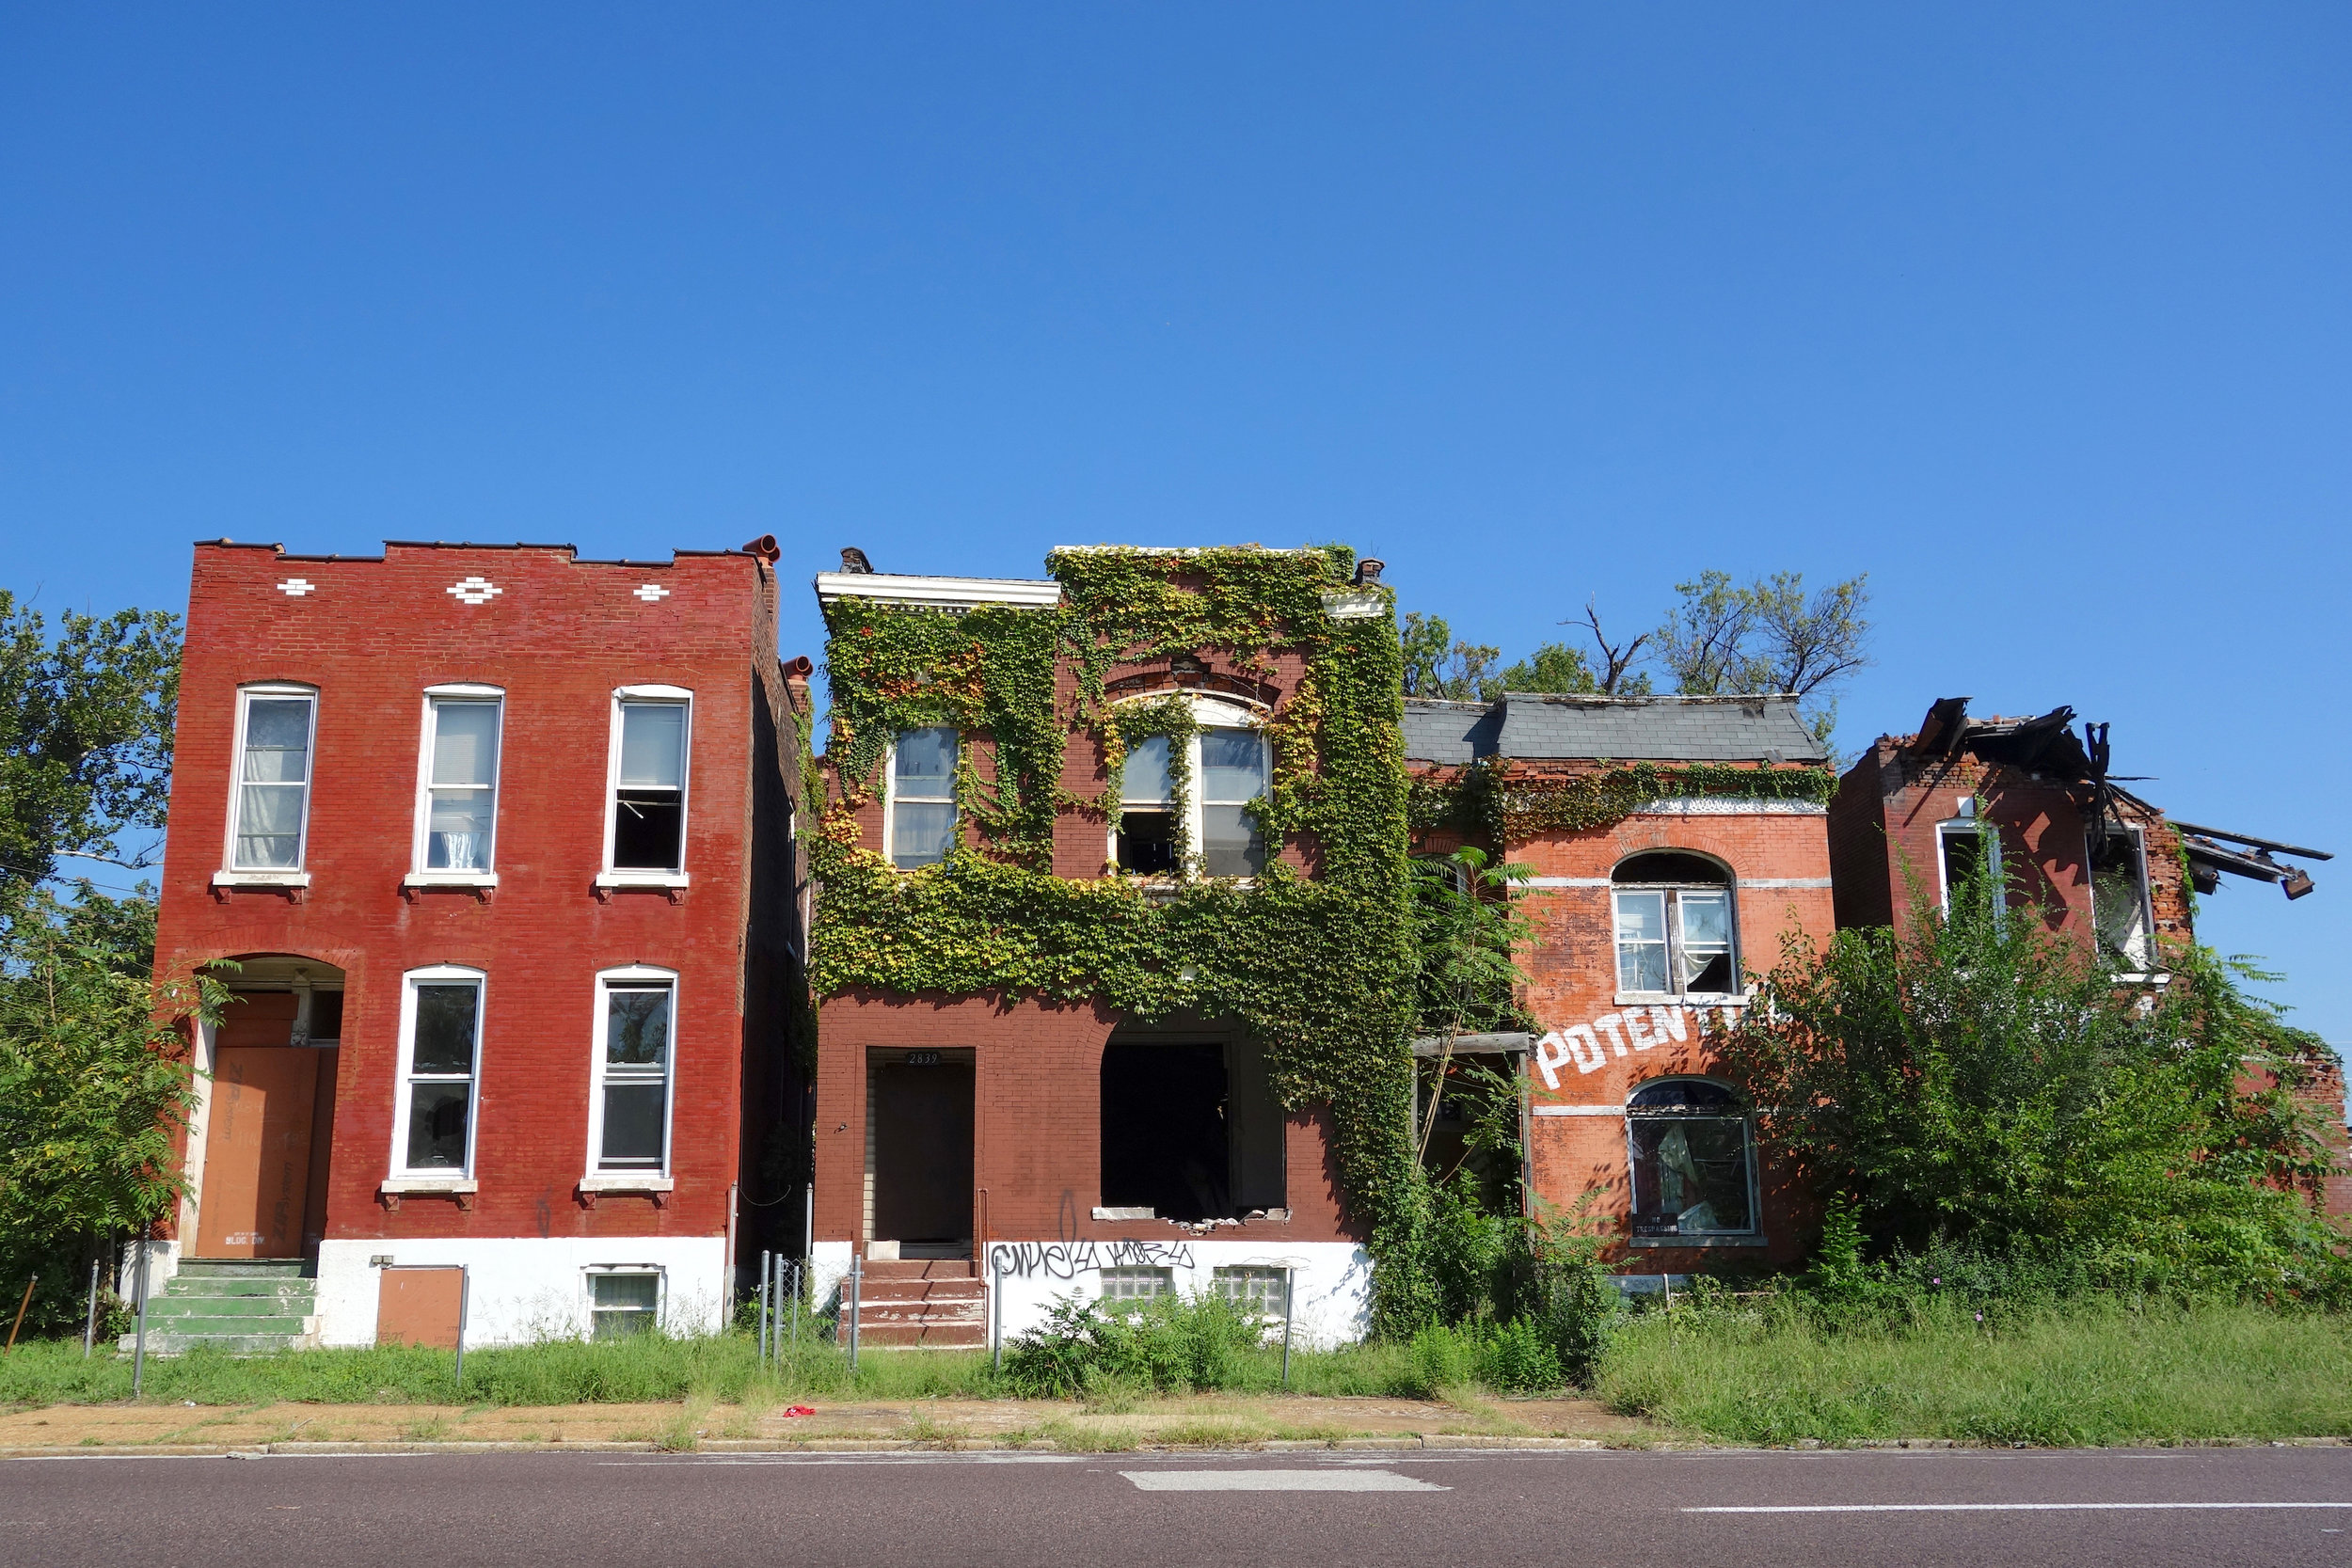 Figure 3. Row of houses in varied states of decay, St. Louis, 2016. Photograph by Joseph Heathcott.